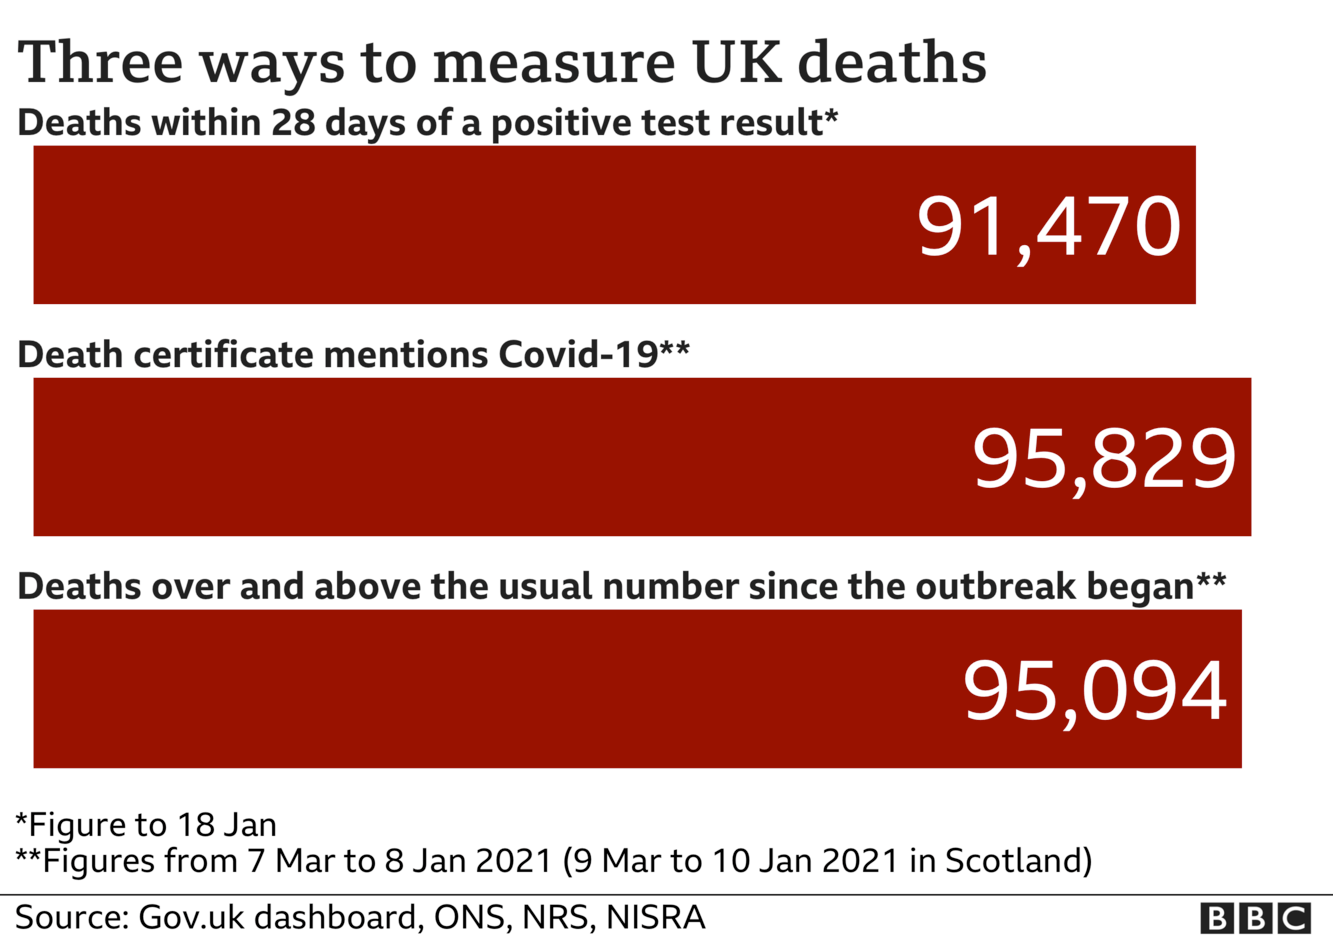 Chart showing three different totals for coronavirus deaths - the government measures all deaths within 28 days of a positive test, that total is 91,470. The ONS includes all deaths where coronavirus was mentioned on the death certificate, that total is 95,829 and the final total includes all deaths over and above the average for the time of year and that total is now 95,094. Updated 19 Jan.